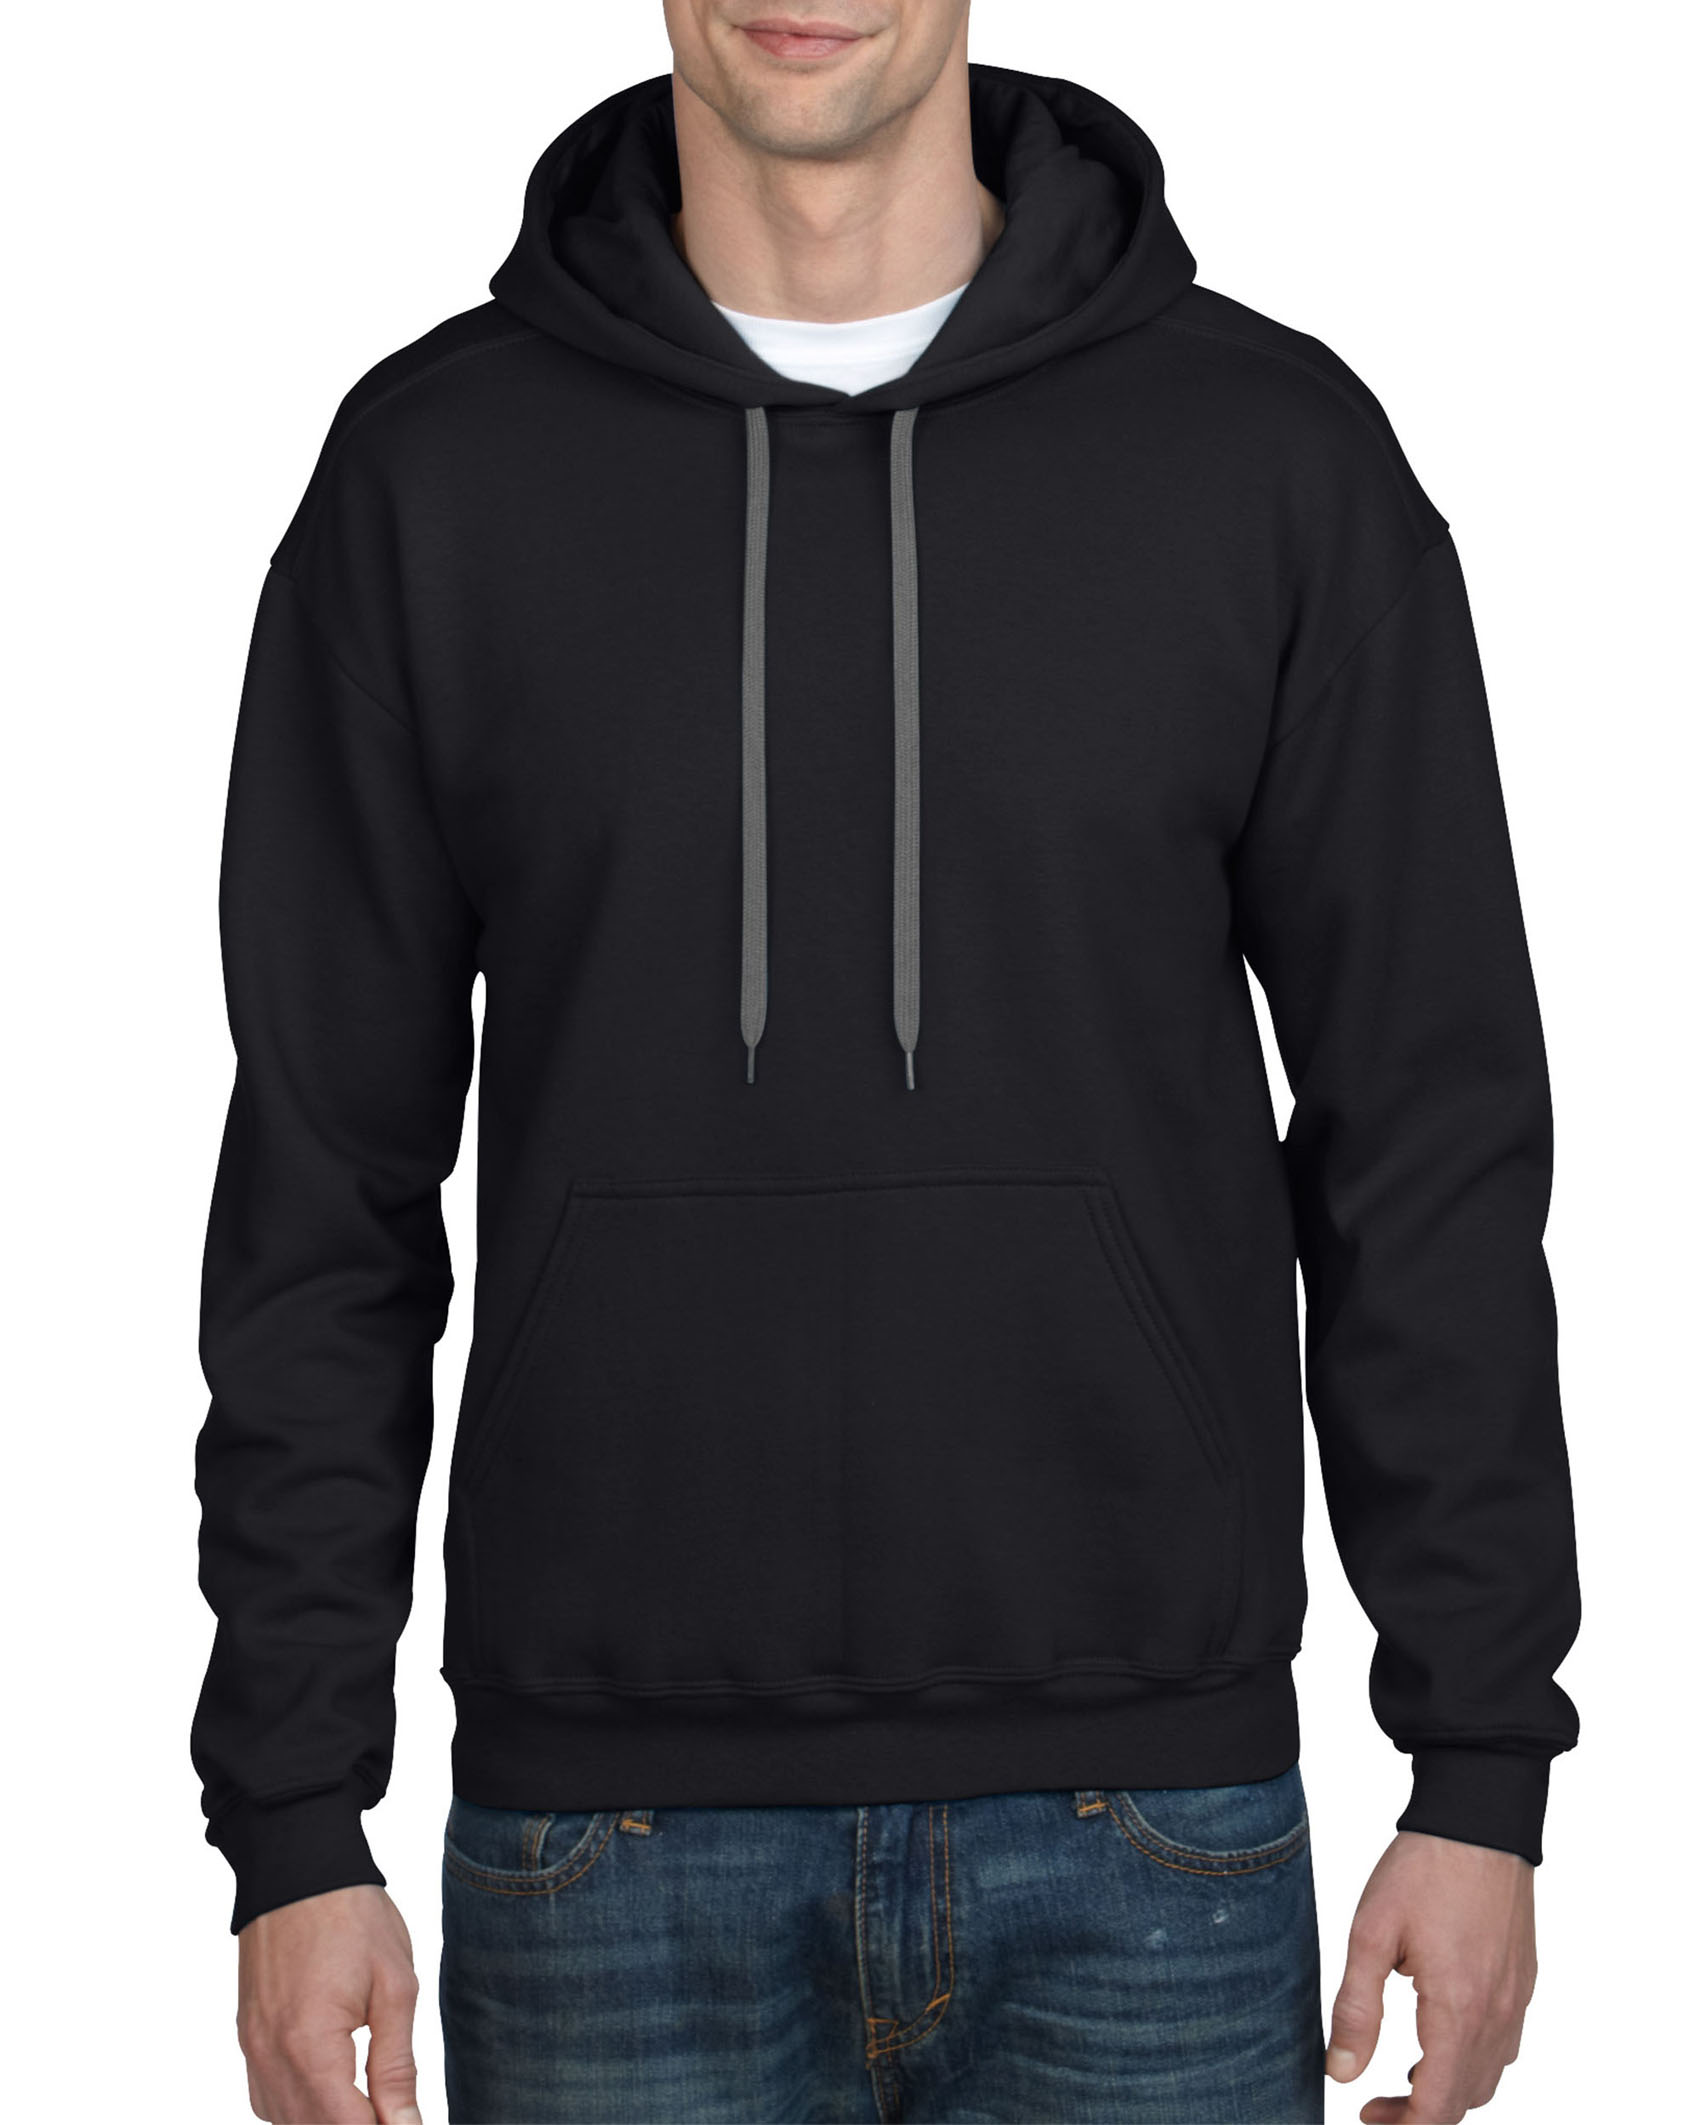 Gildan Sweater Hooded Premium Cotton